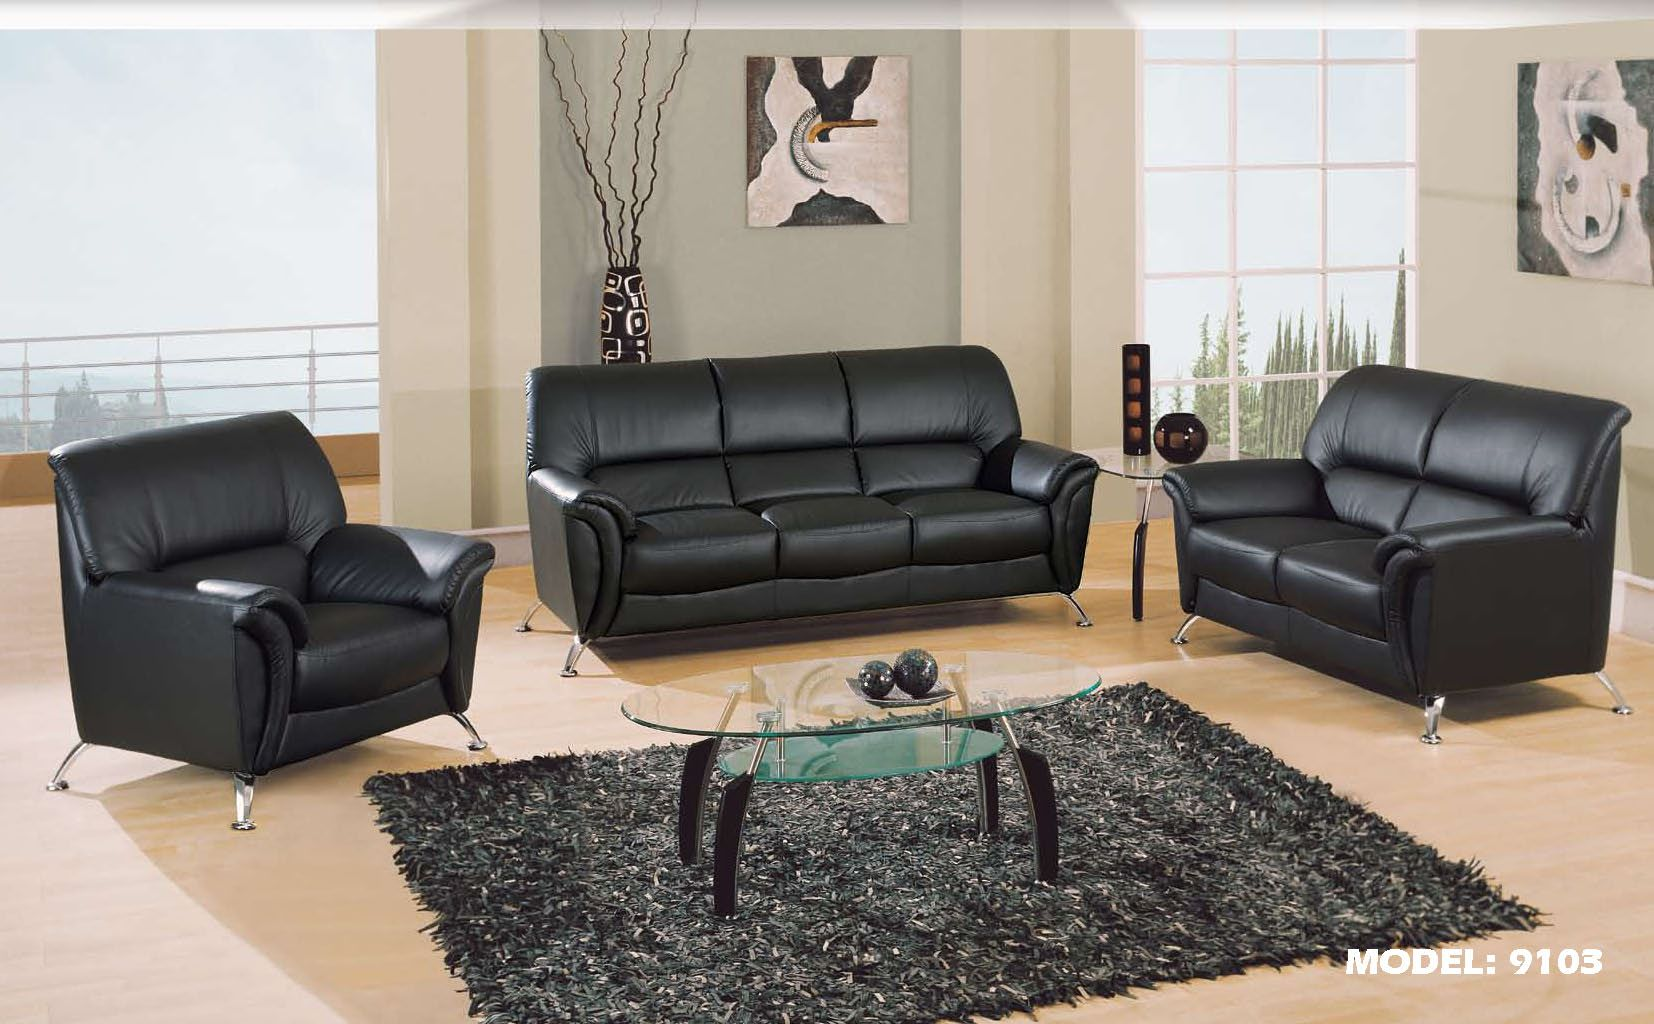 Best Images Of Sofa Set Designs Google Search Leather Sofa 400 x 300